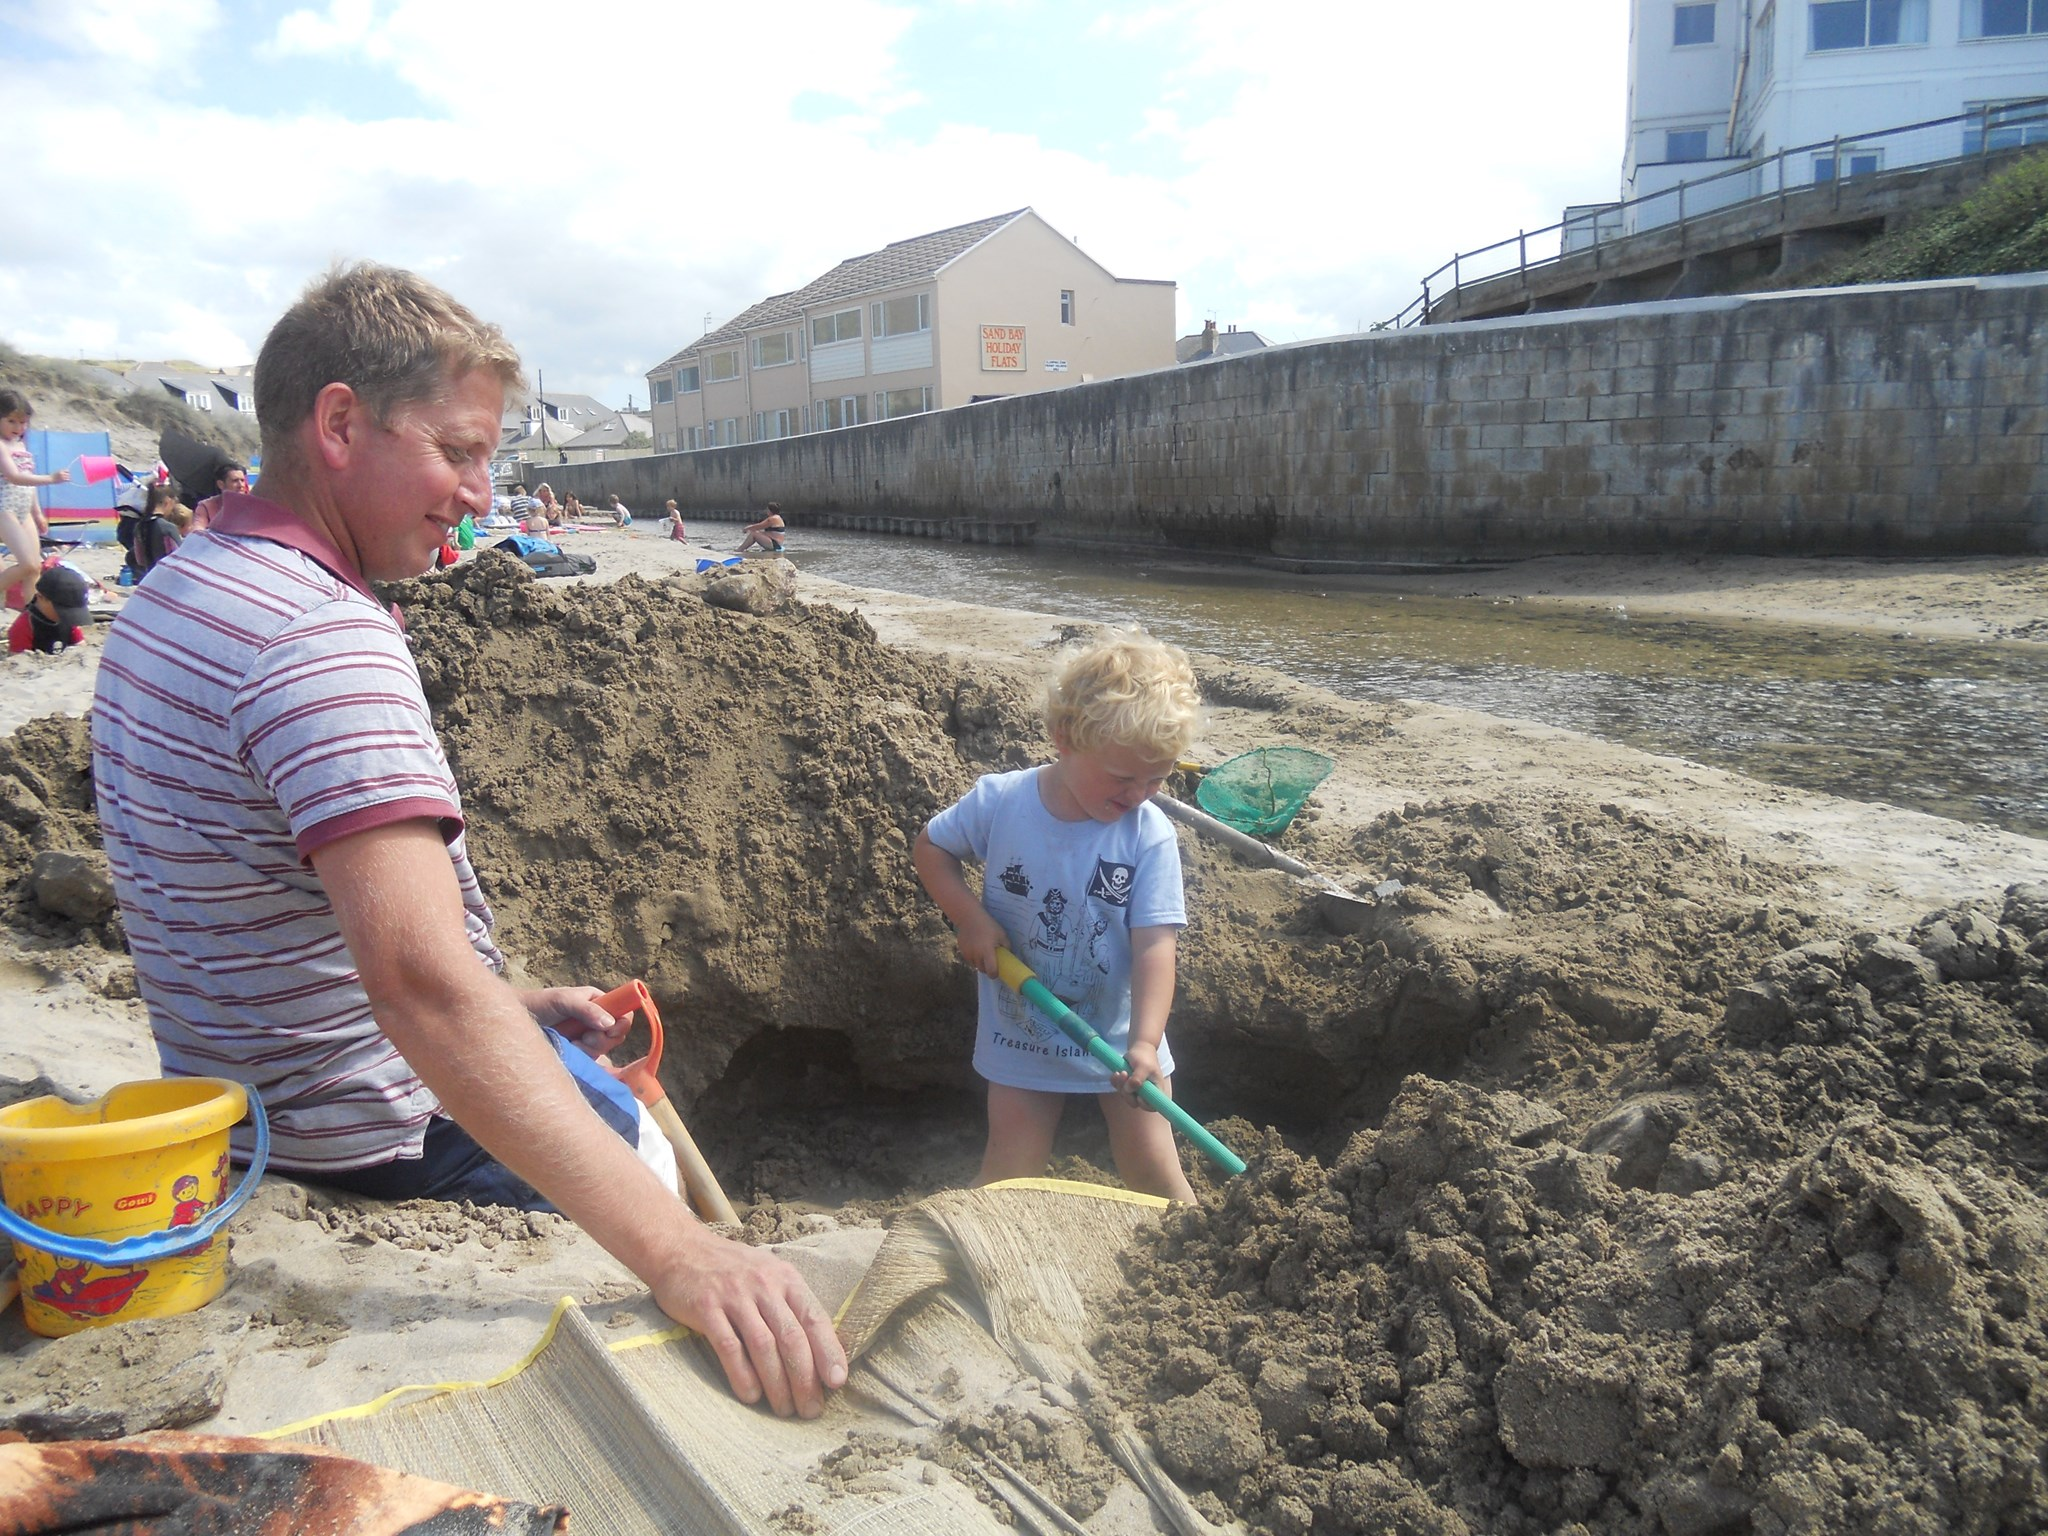 Jack digging a big hole on the beach with Daddy by the stream